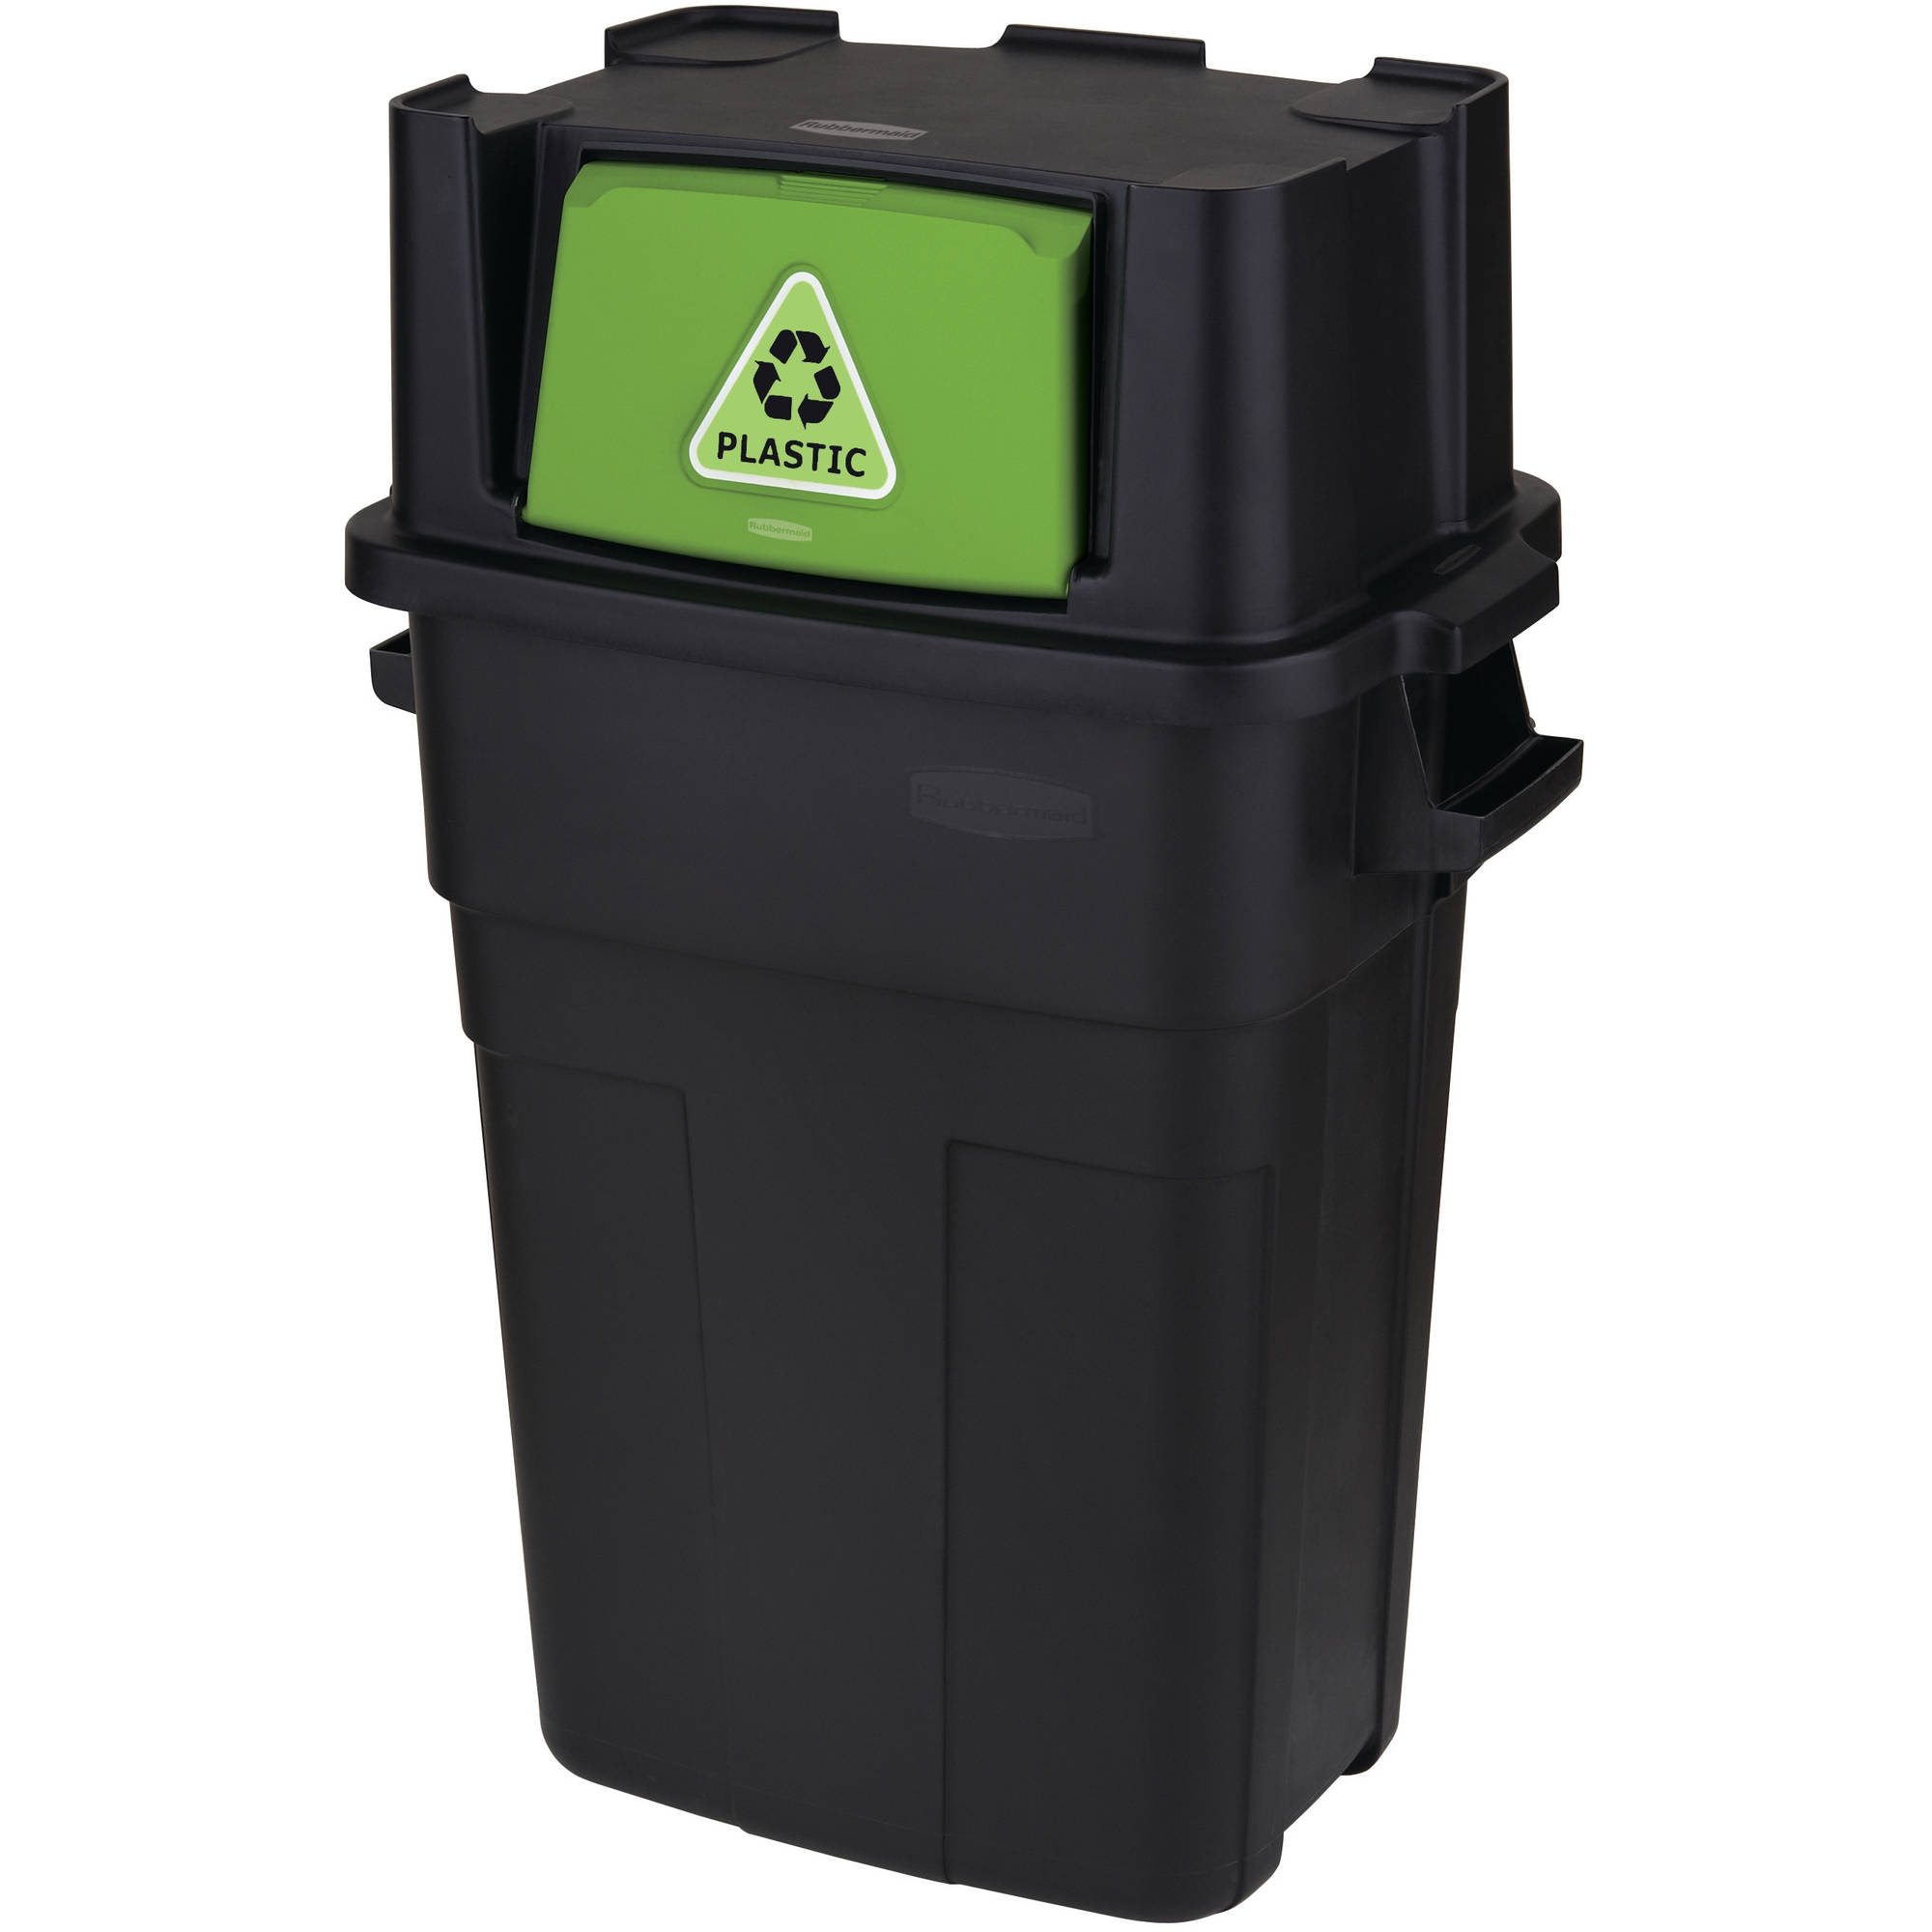 Rubbermaid 30-Gallon Flip-Door Stackable Recycle Bin